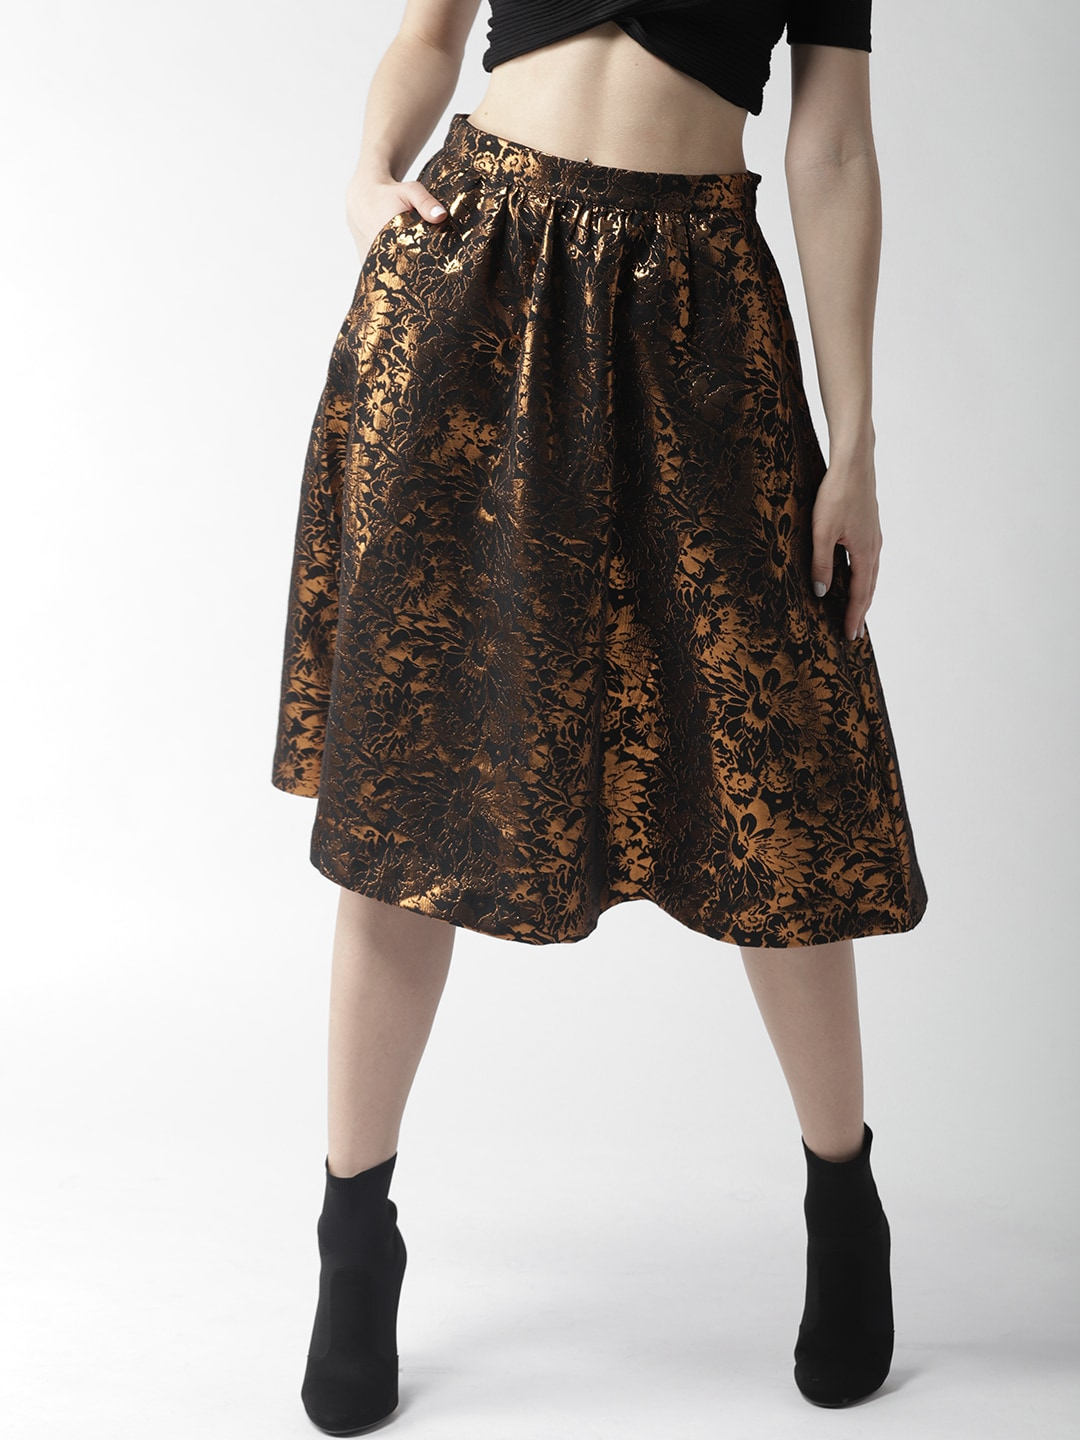 a92cf9b588e33b Party Black Skirts - Buy Party Black Skirts online in India